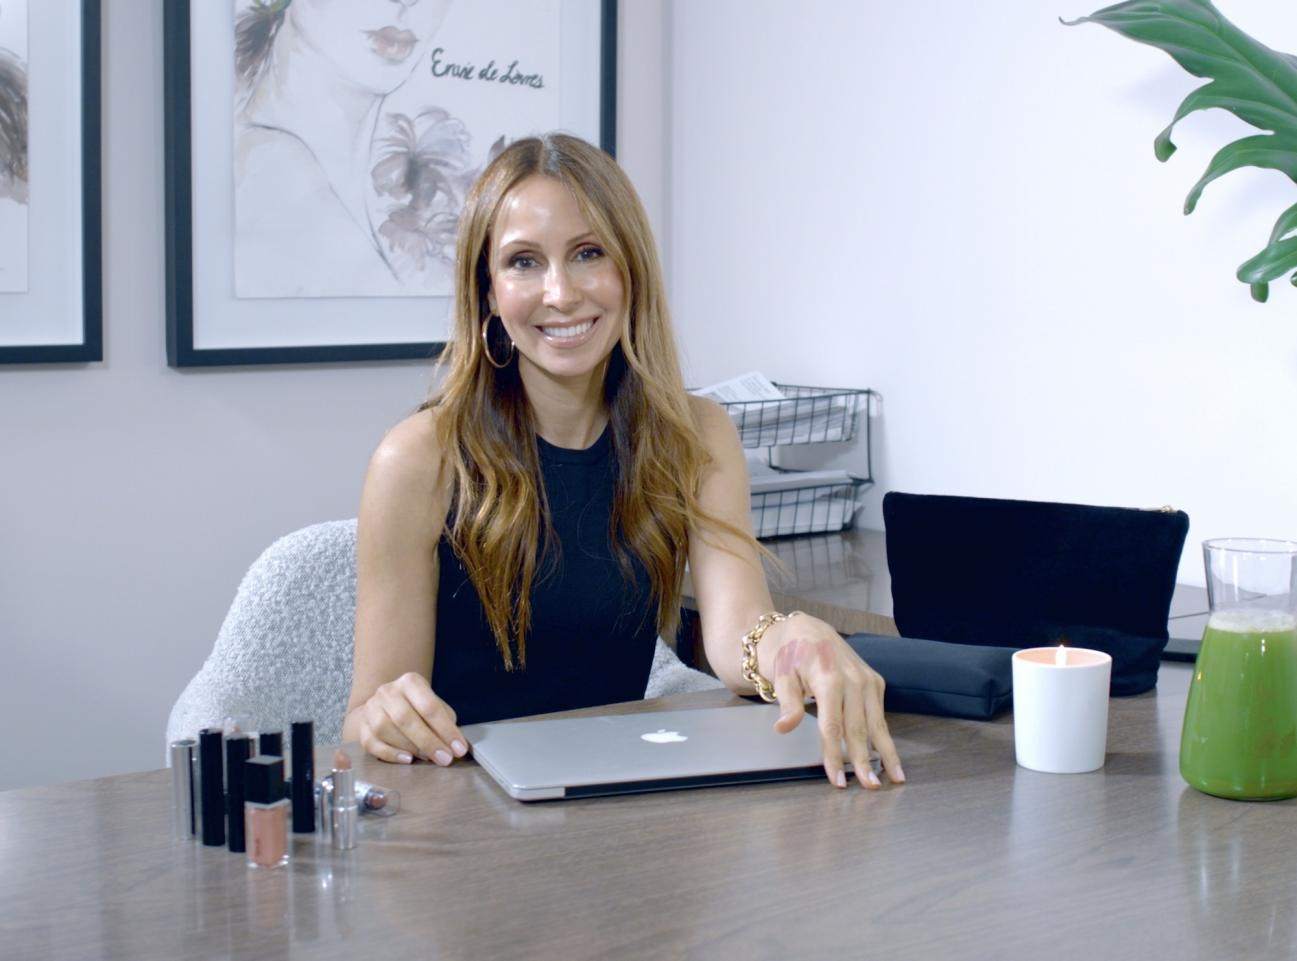 Isabel Madison, CEO & Founder of Nude Envie